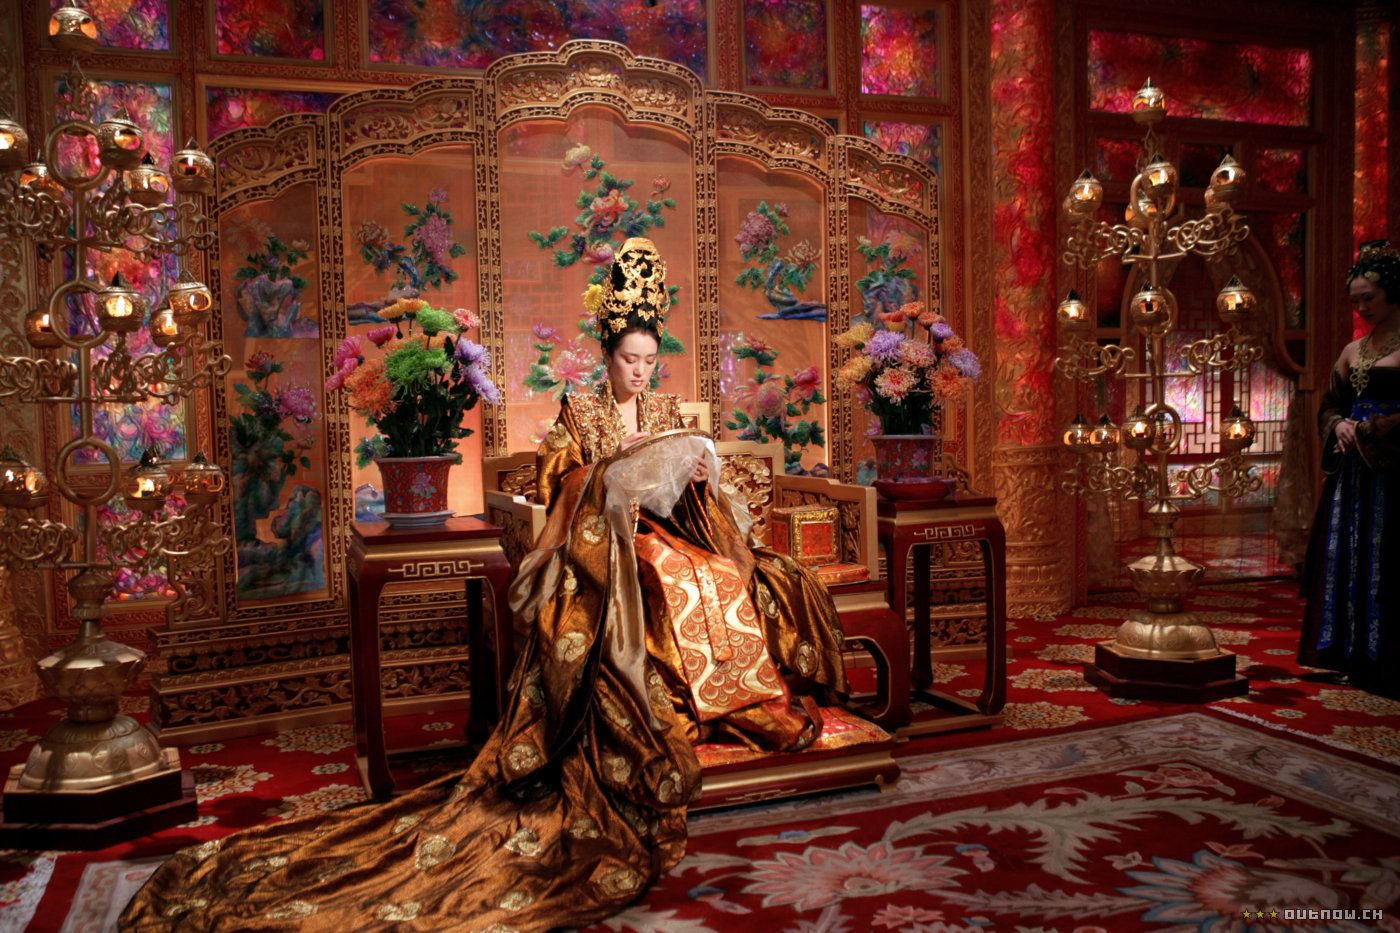 Curse of the Golden Flower / costume designer Yee Chung